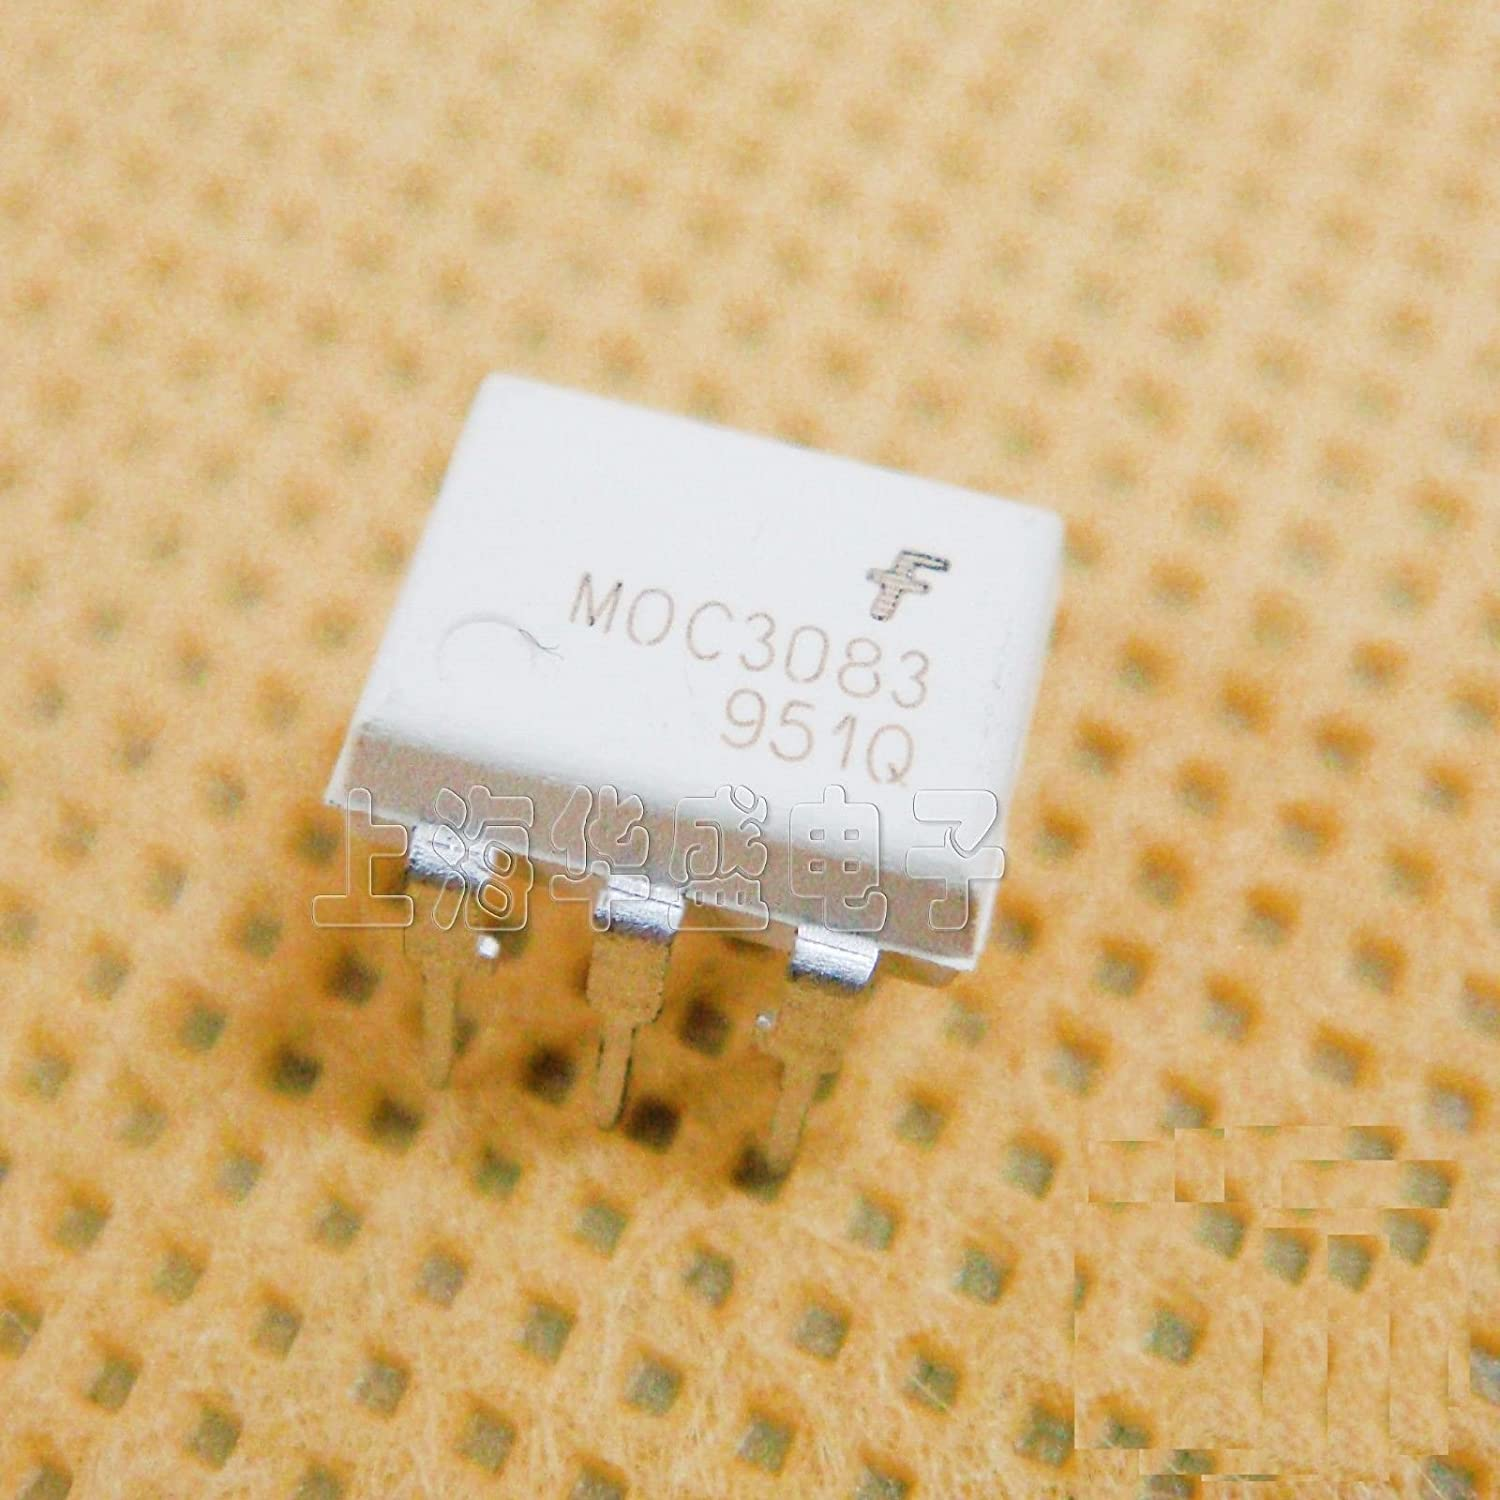 5pcs MOC3083 SOP-6 FSC Zero-Cross Optoisolators Triac Driver NEW